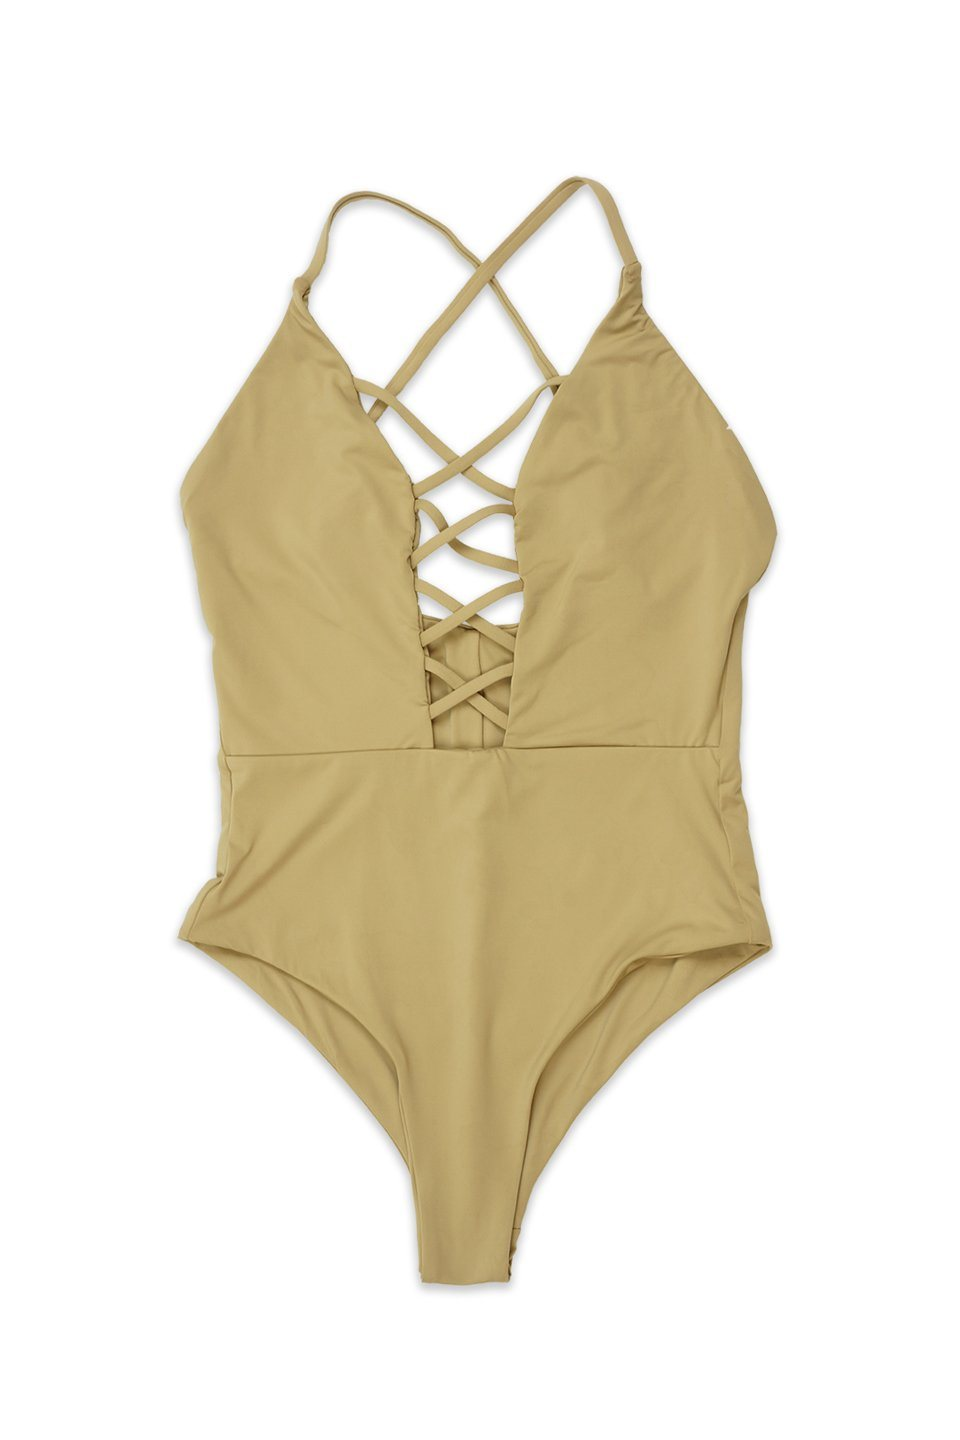 Beige Seamless Caged Front One Piece Front - Dippin' Daisy's Swimwear